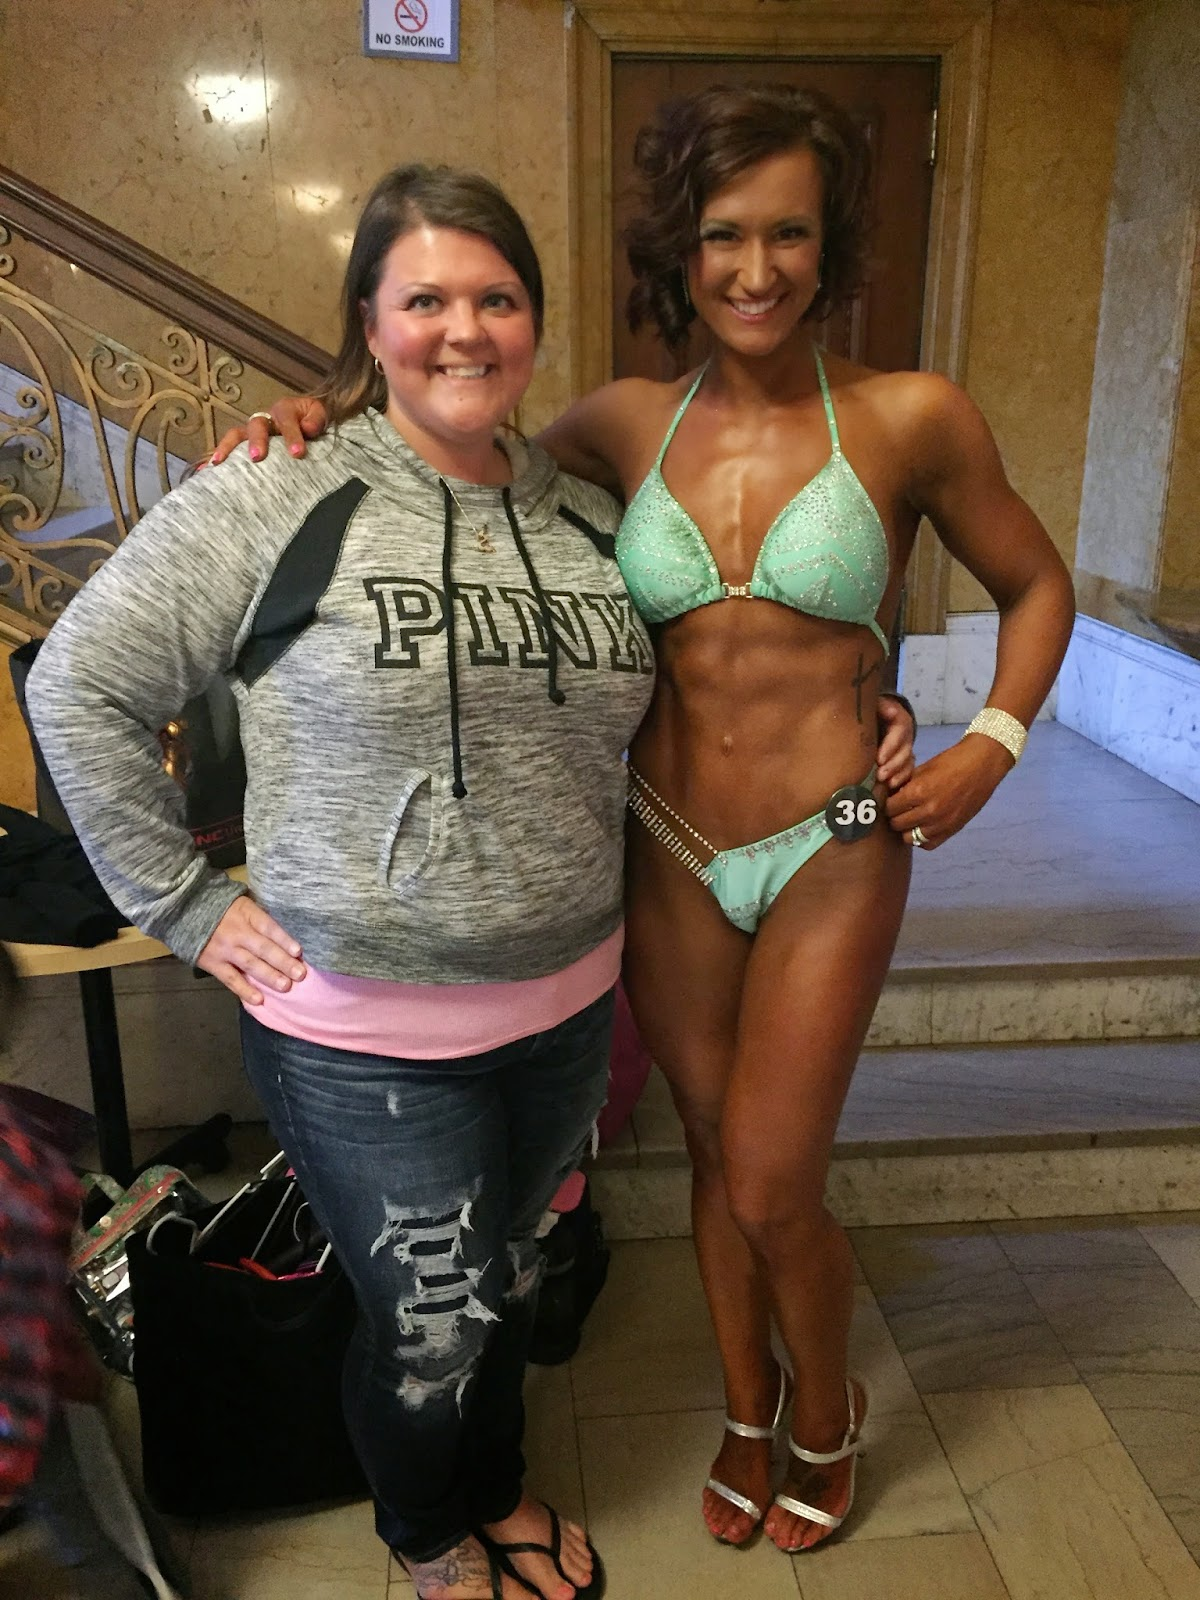 Shakeiology, health shake meal replacements, shakeology transformation,  Deidra Penrose, Figure competition recap, NPC Figure show, figure competition journey, top team beachbody coach harrisburg pa, beachbody coach pittsburgh pa, top online fitness coach , weight loss journey, fitness journey, NPC figure competition, healthy mom, mom and figure competitor, nurse and fitness, healthy mom, mom and lifting